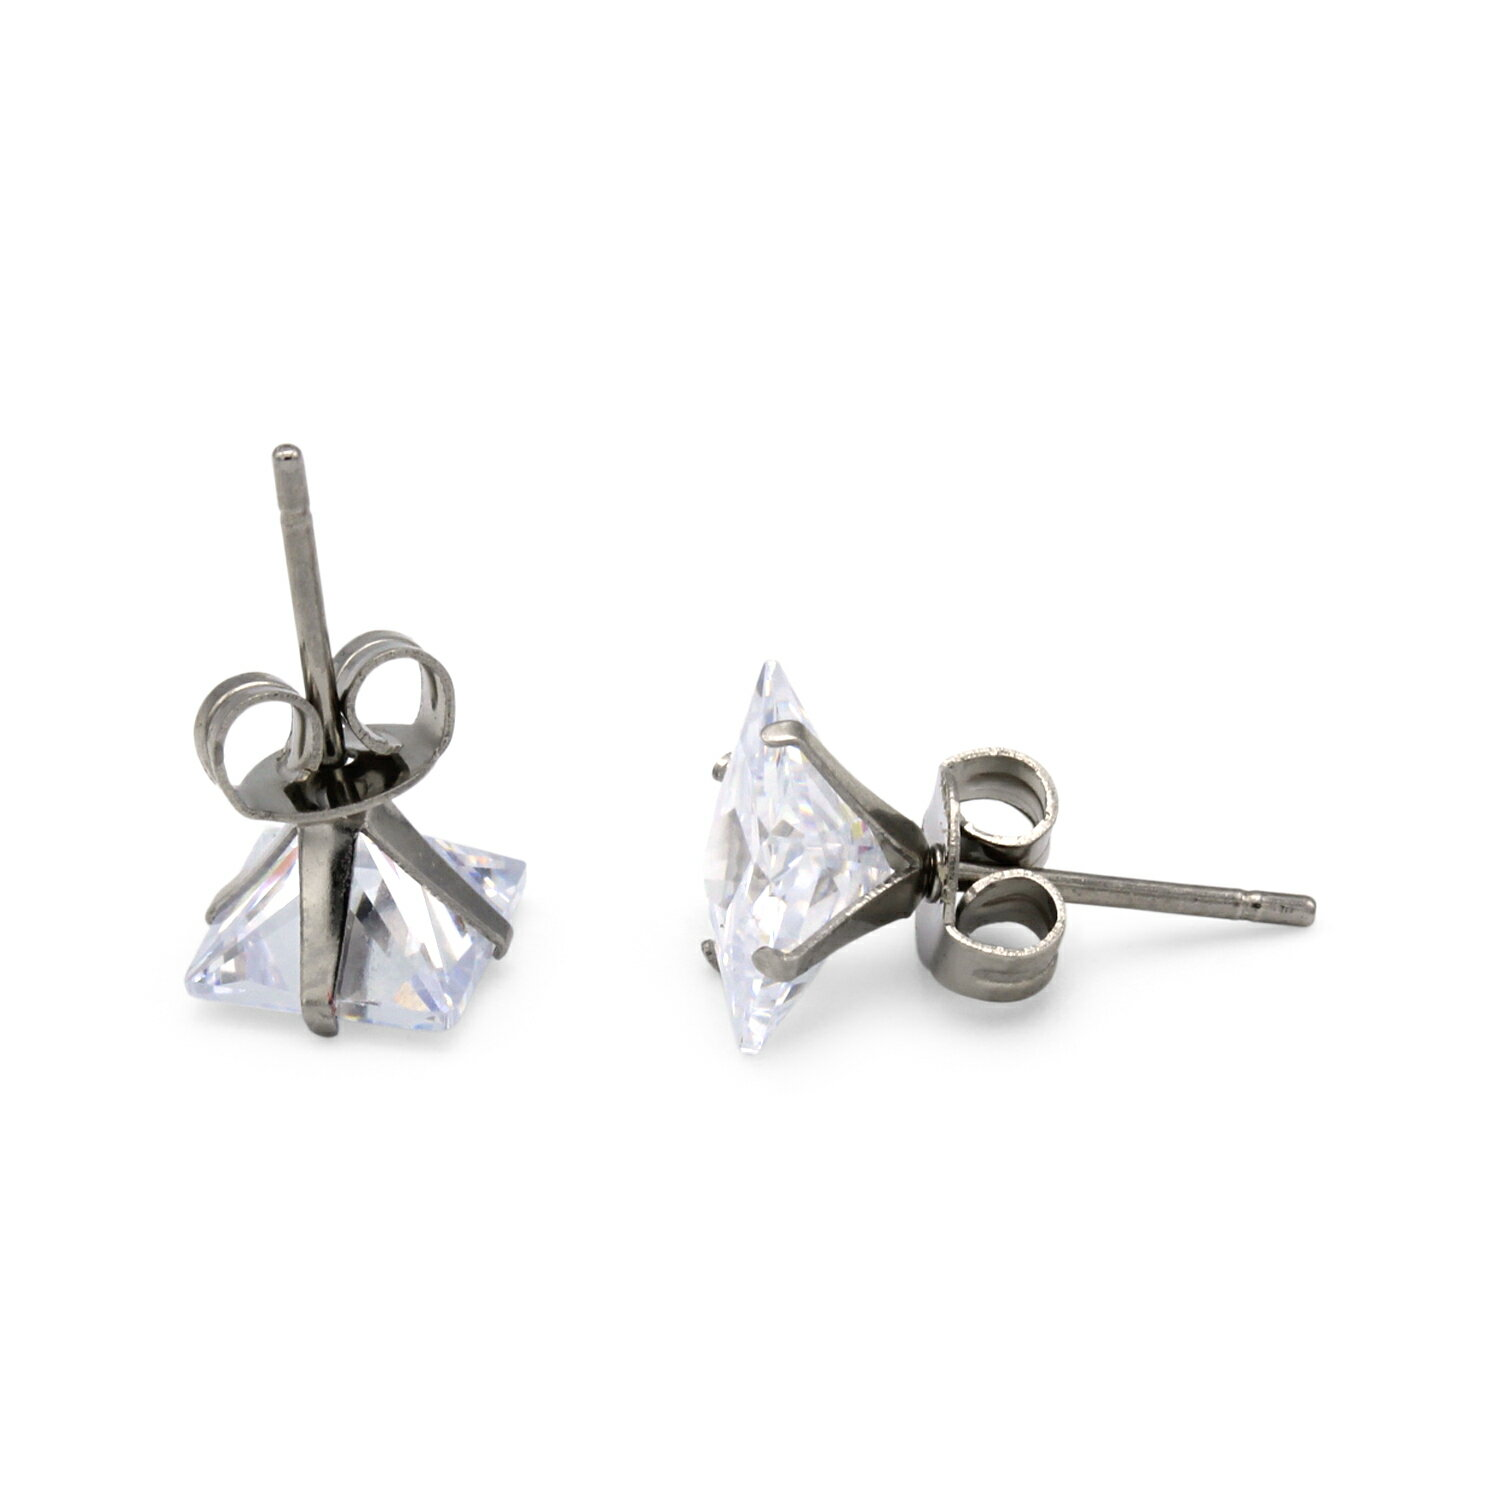 df66a04f7fd7 Silver Cubic Zirconia Unisex Stud Earrings Stainless Steel Jewelry  Collection Square Studs 3-10 mm